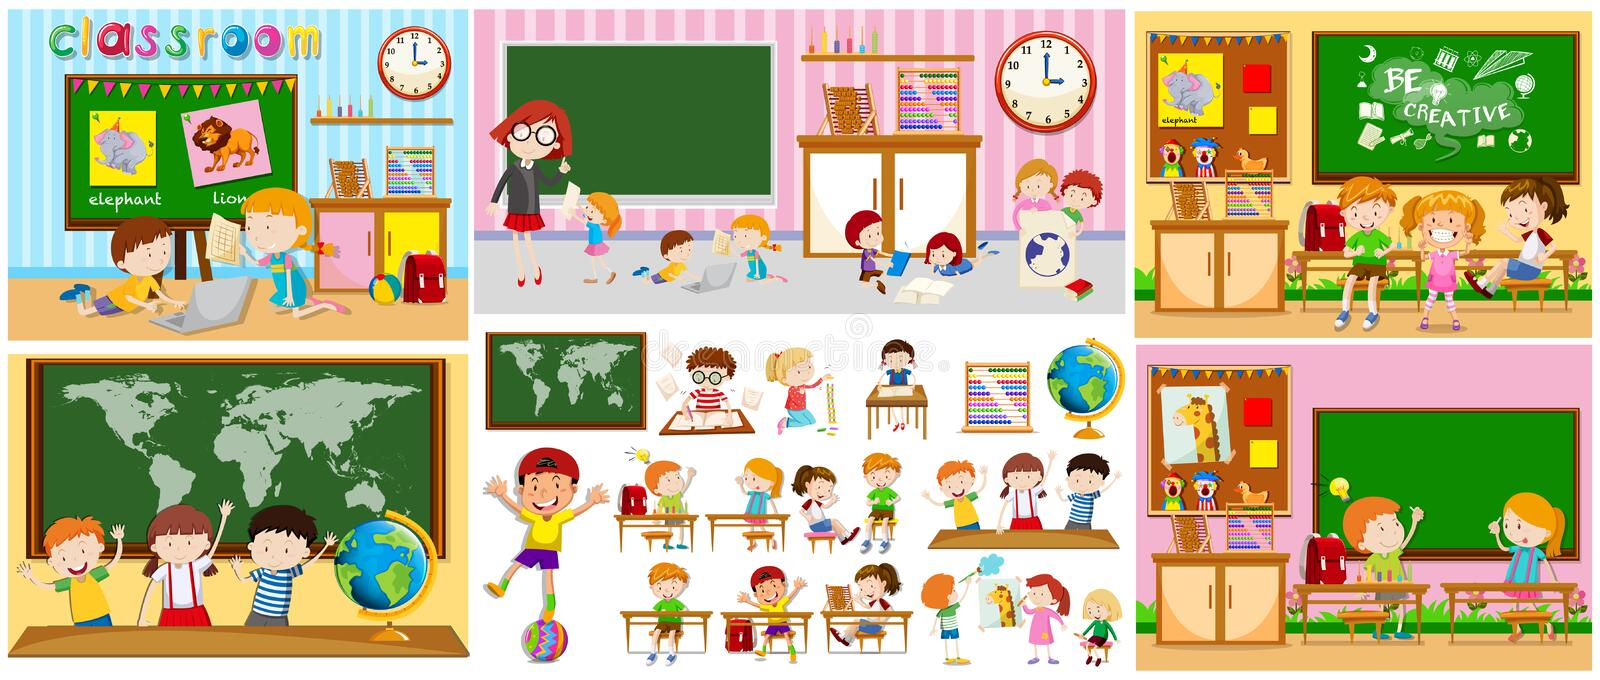 Different scenes of classrooms with kids royalty free illustration